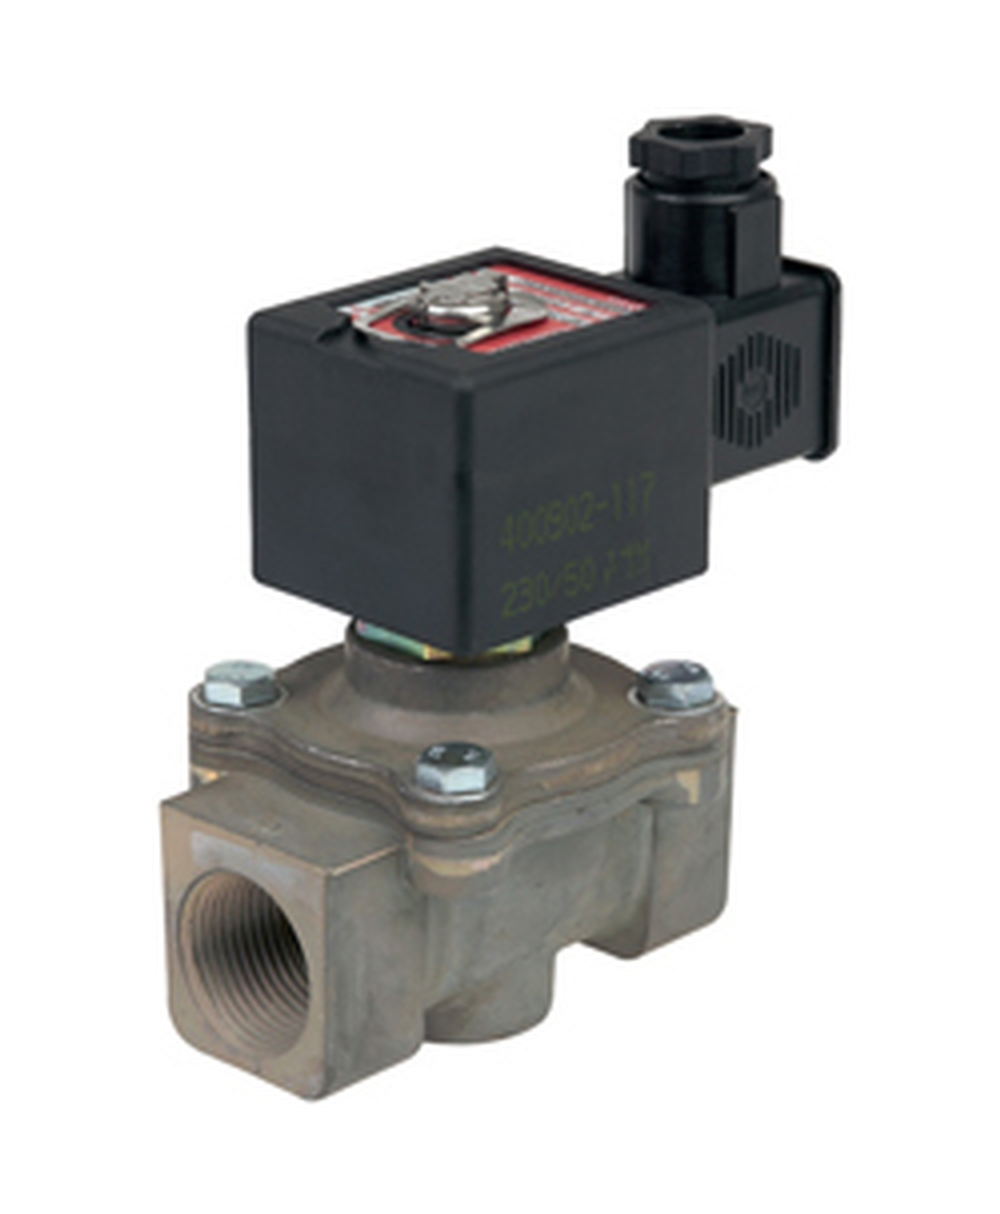 EN161 Gas Approved Valves